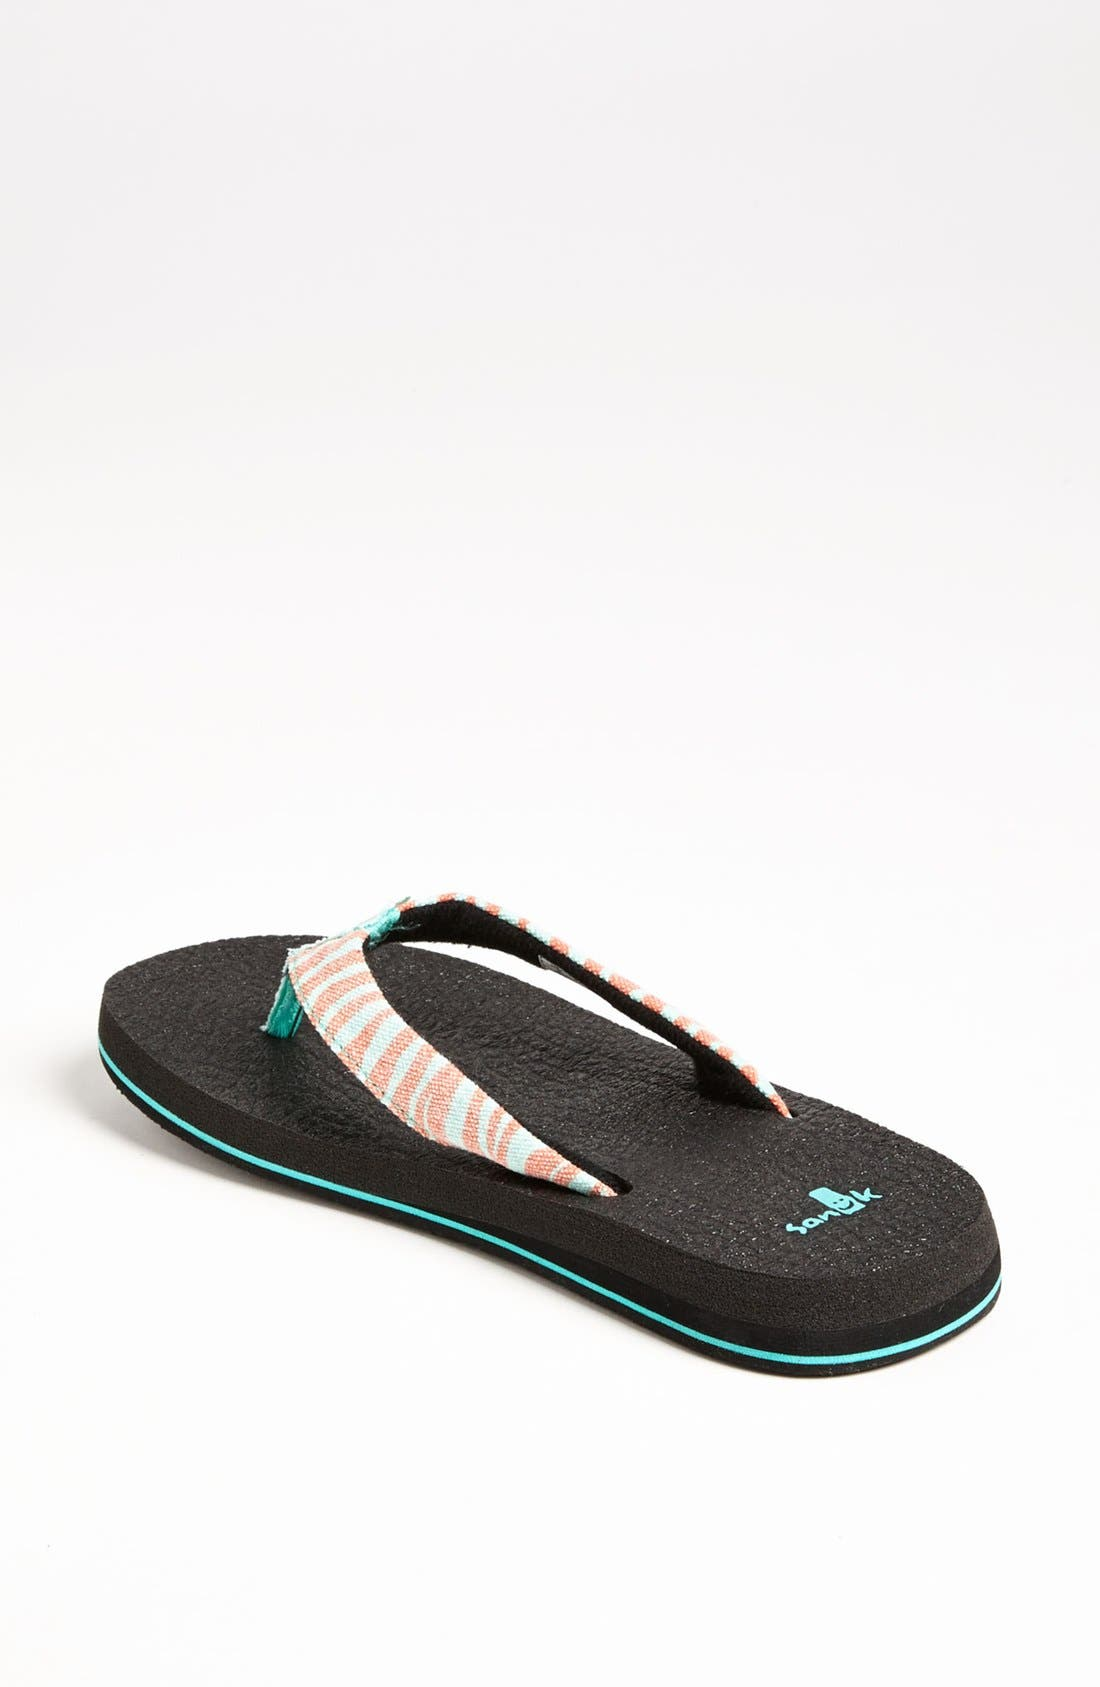 Alternate Image 2  - Sanuk 'Yoga Wildlife' Flip Flop (Women)